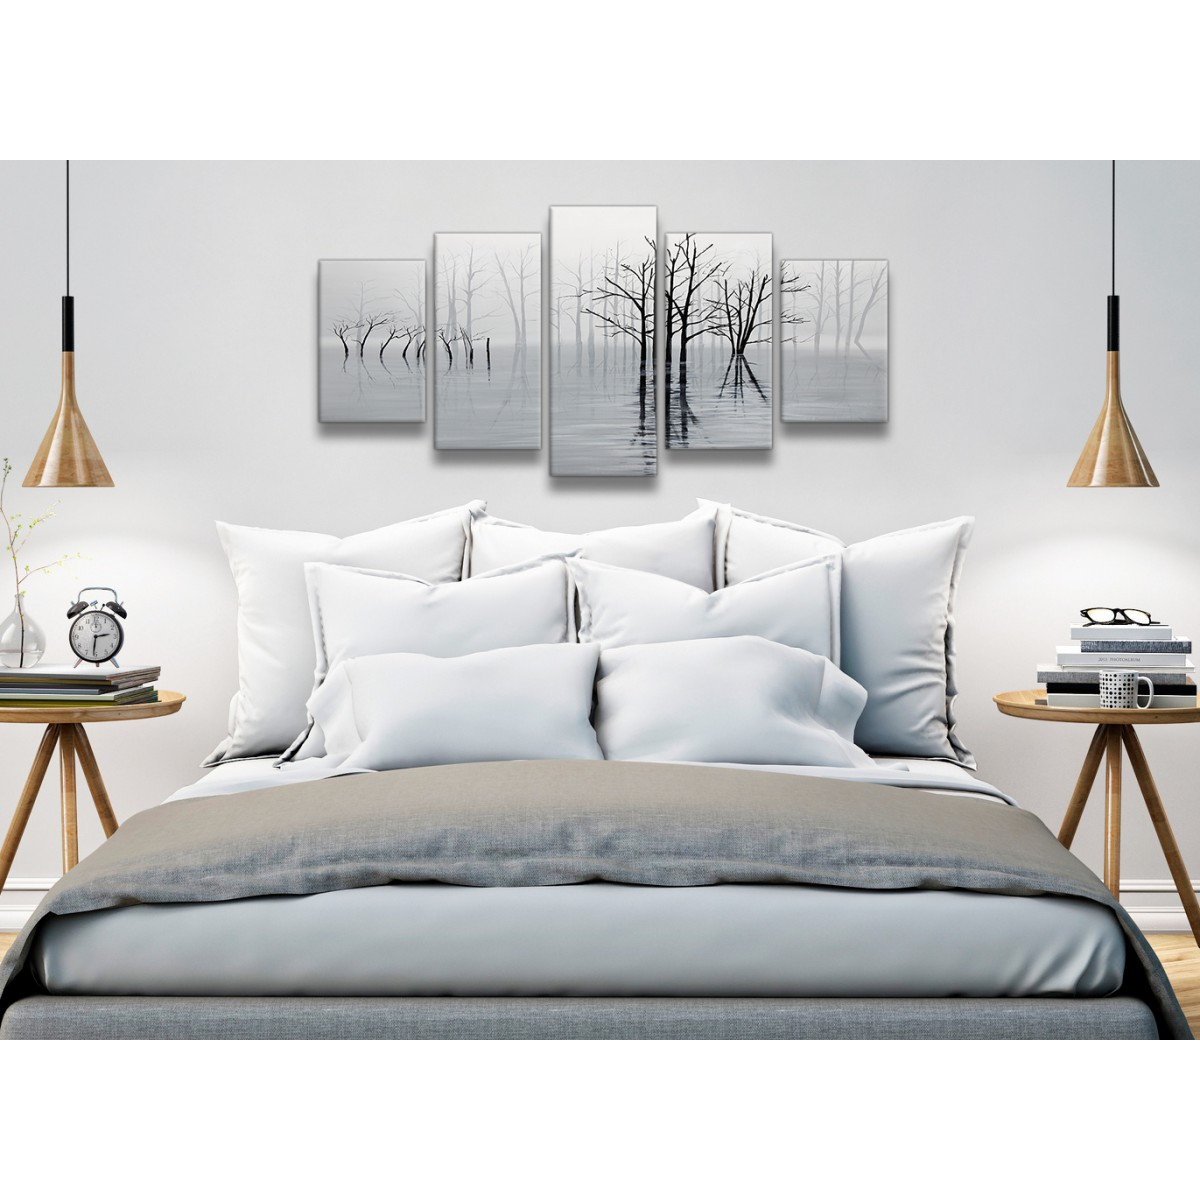 5 Panel Black White Grey Tree Landscape Painting Bedroom